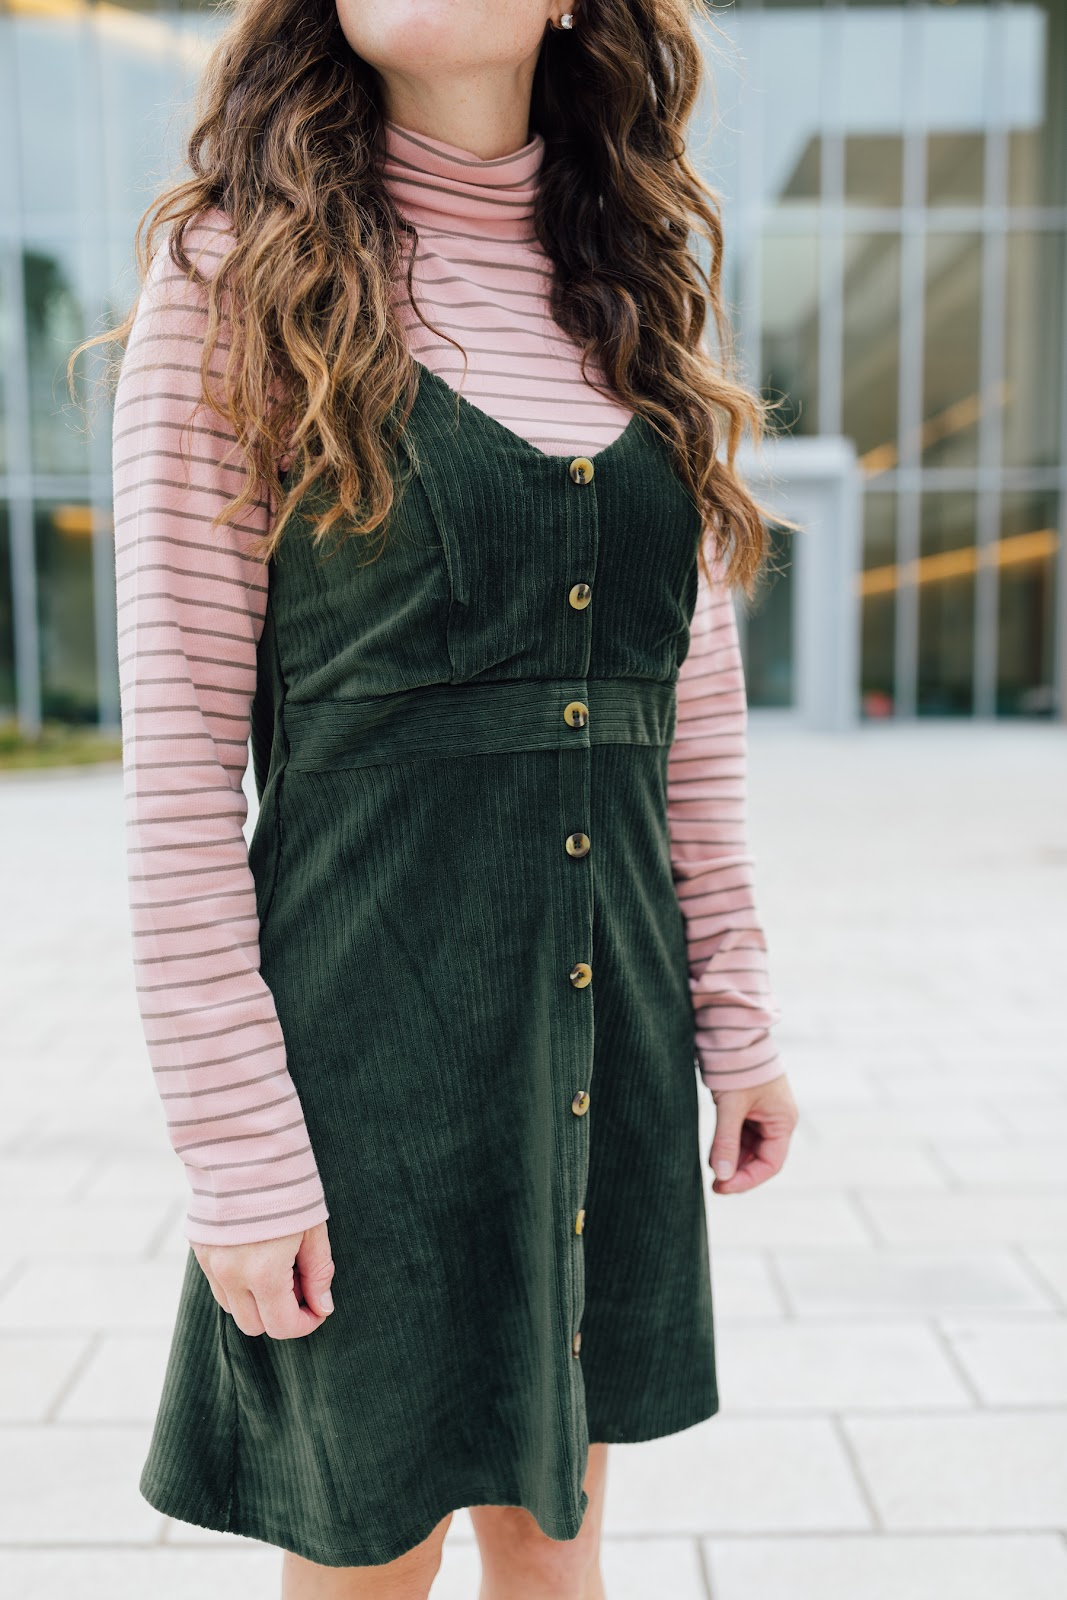 Fall outfit with green jumper and turtleneck and brown suede boots on Caitlin Houston